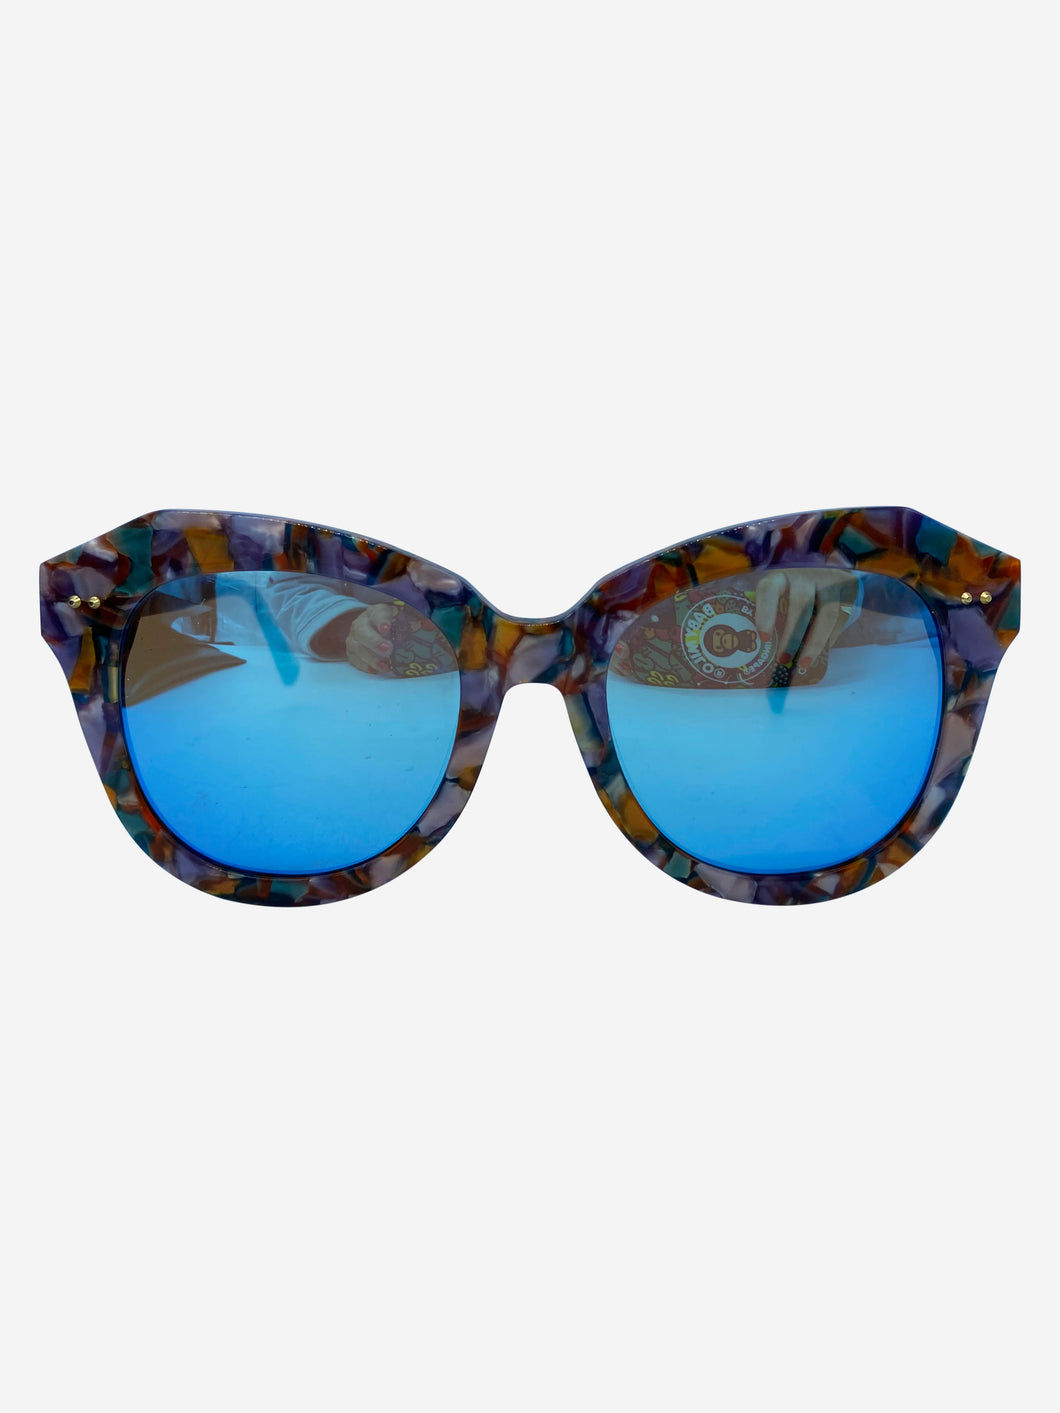 Multicoloured frame sunglasses with blue mirrored lens